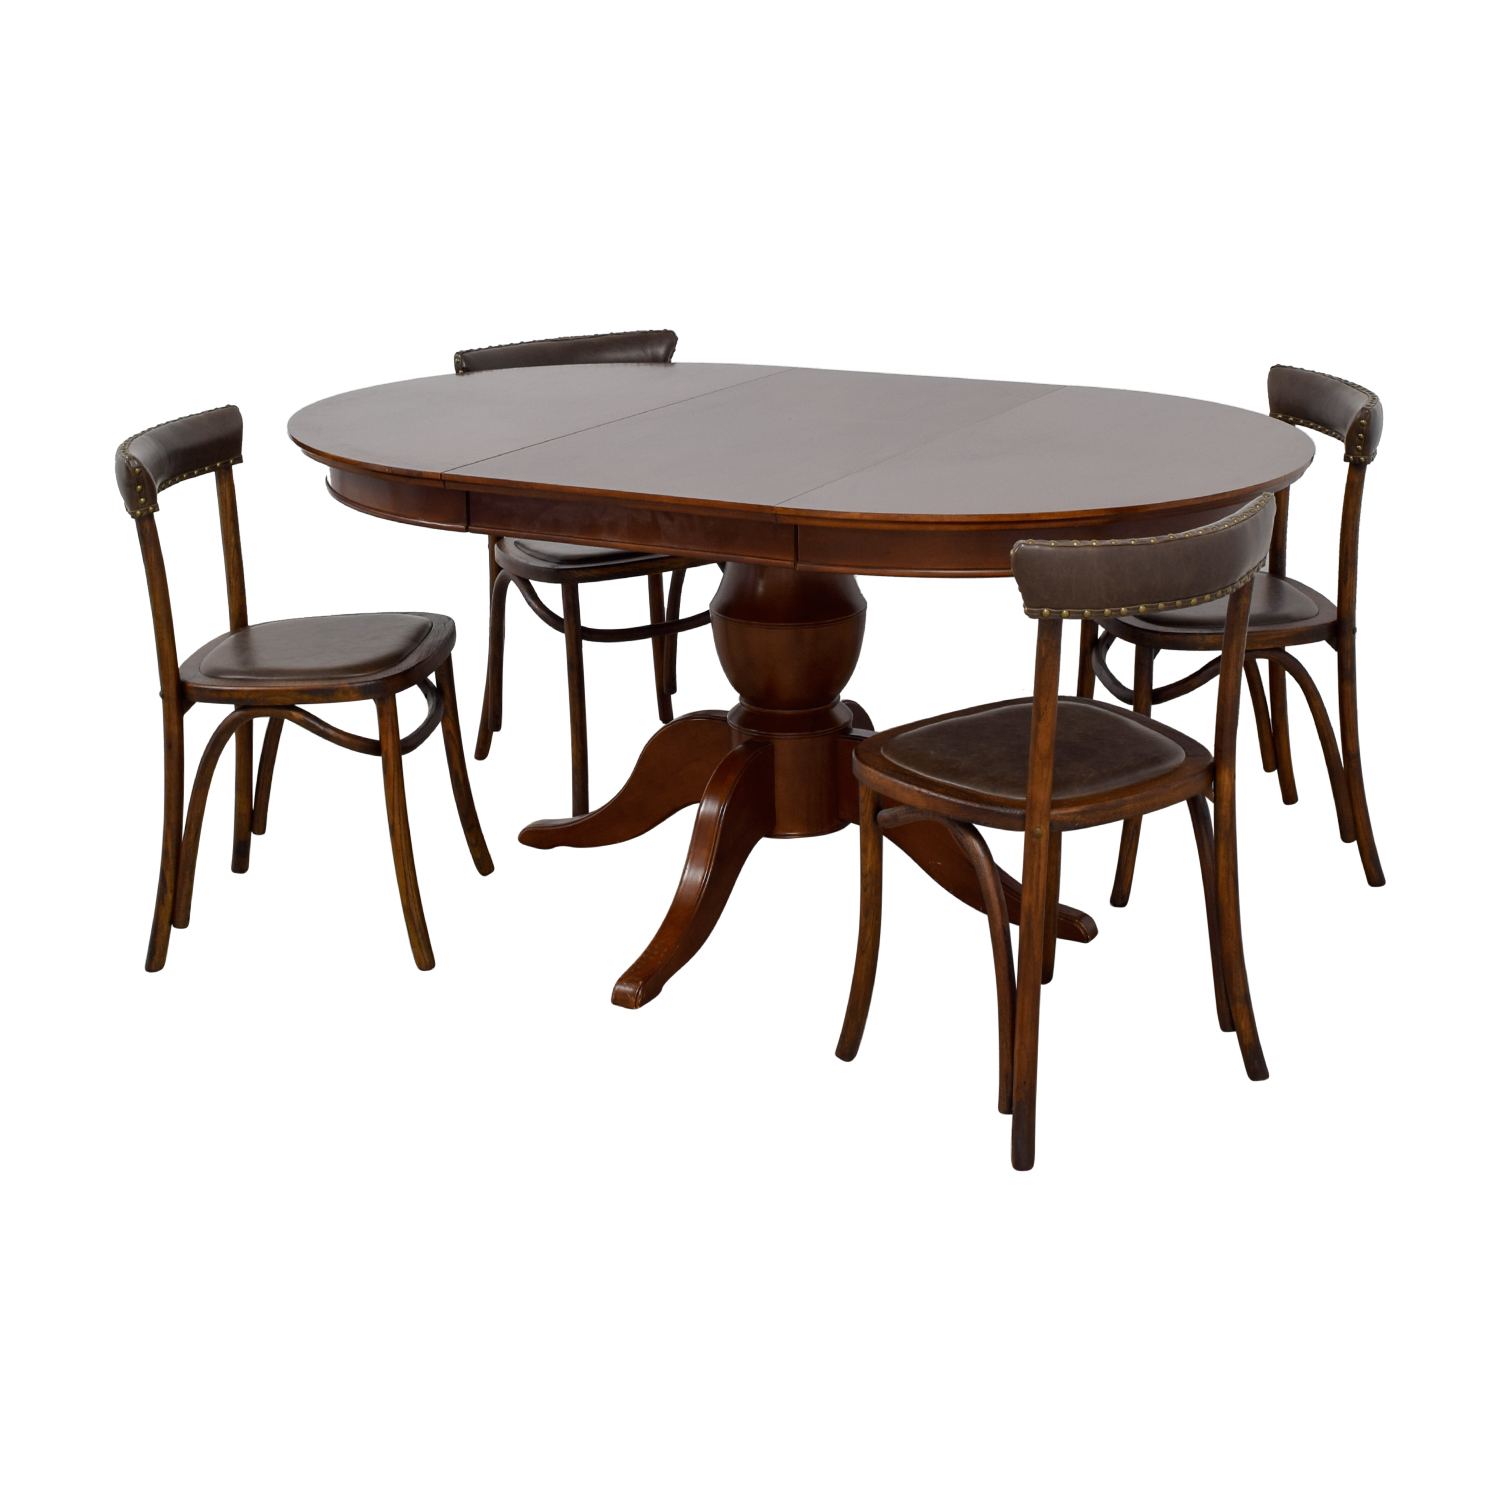 Pottery Barn Pottery Barn Round Spindle Table with Extension Leaf Dining Set for sale